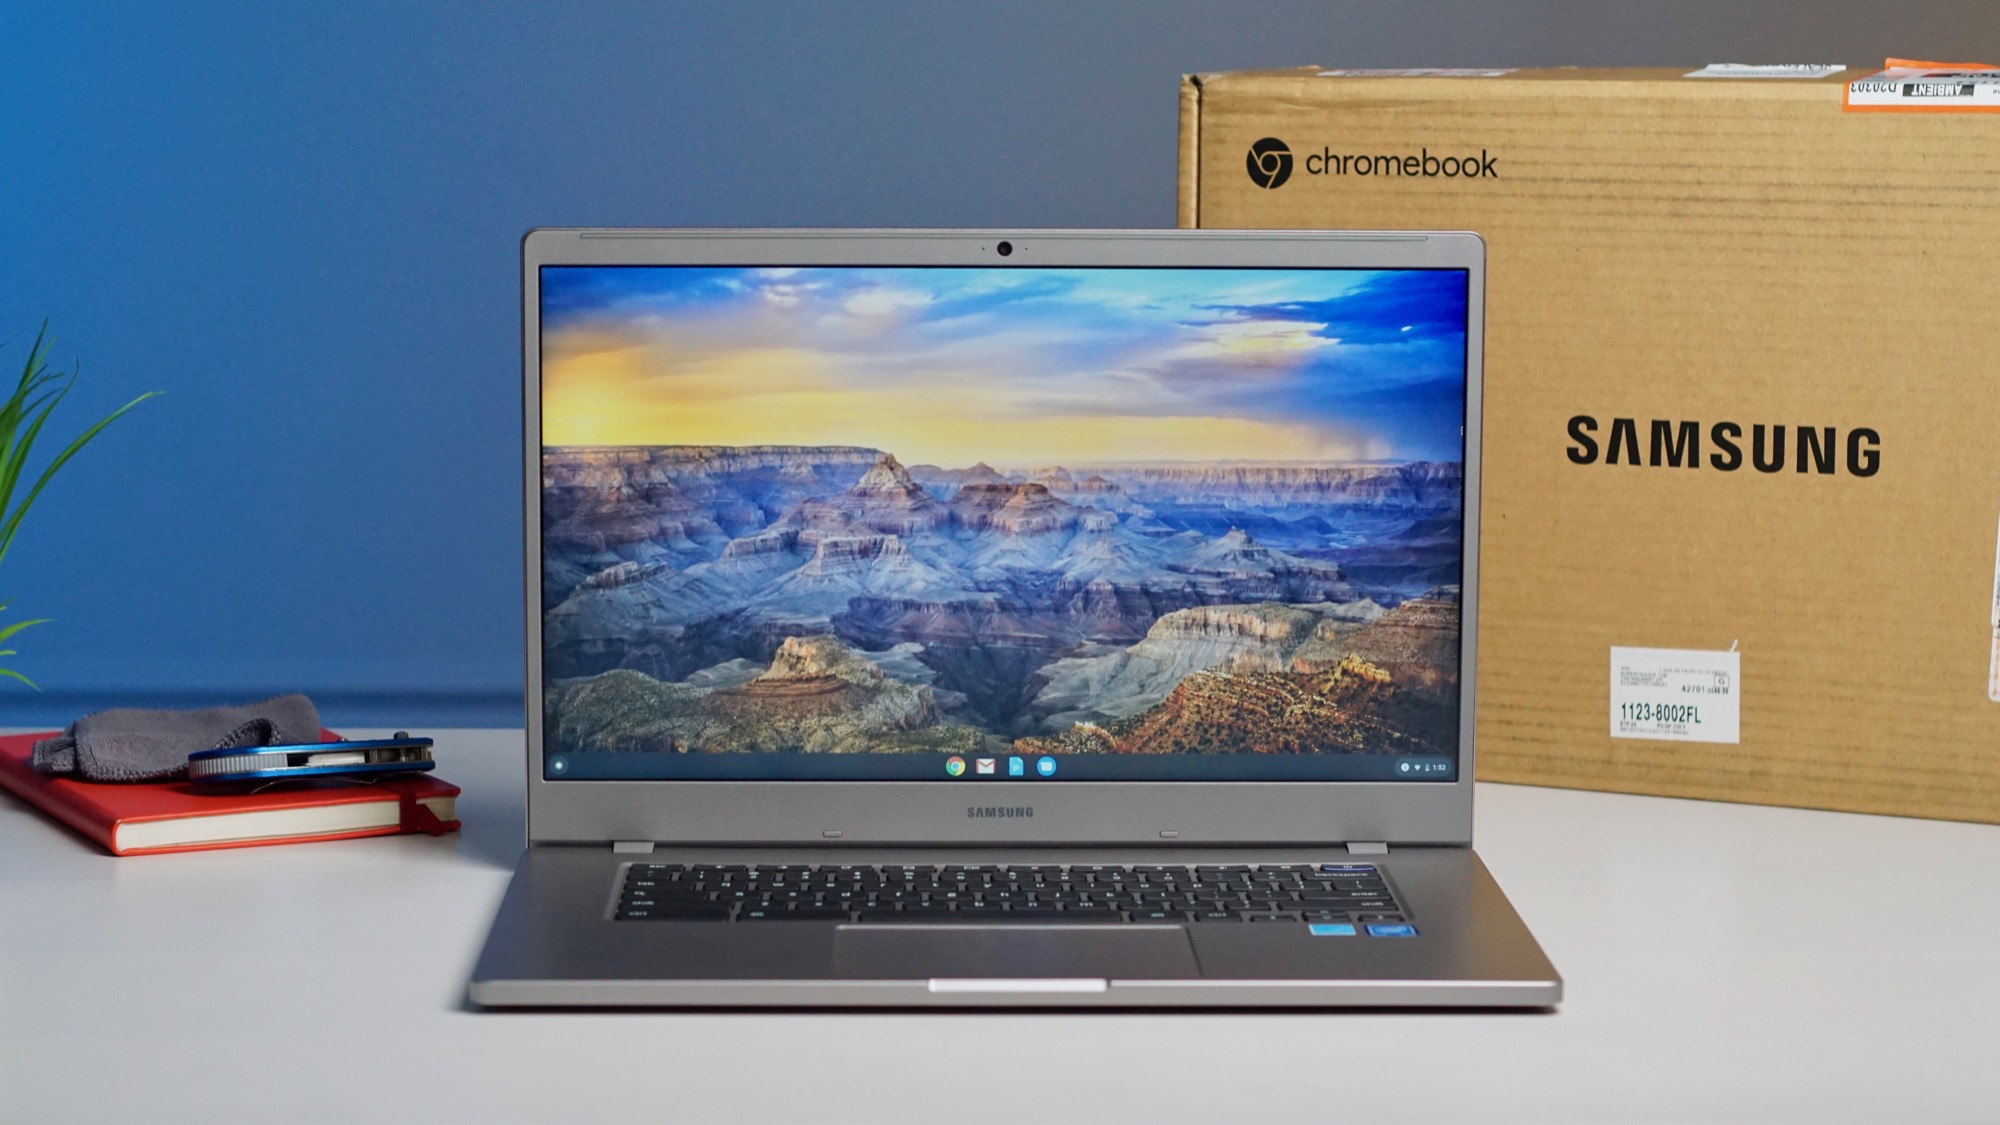 Samsung Chromebook 4+ unboxing and initial impressions [VIDEO]